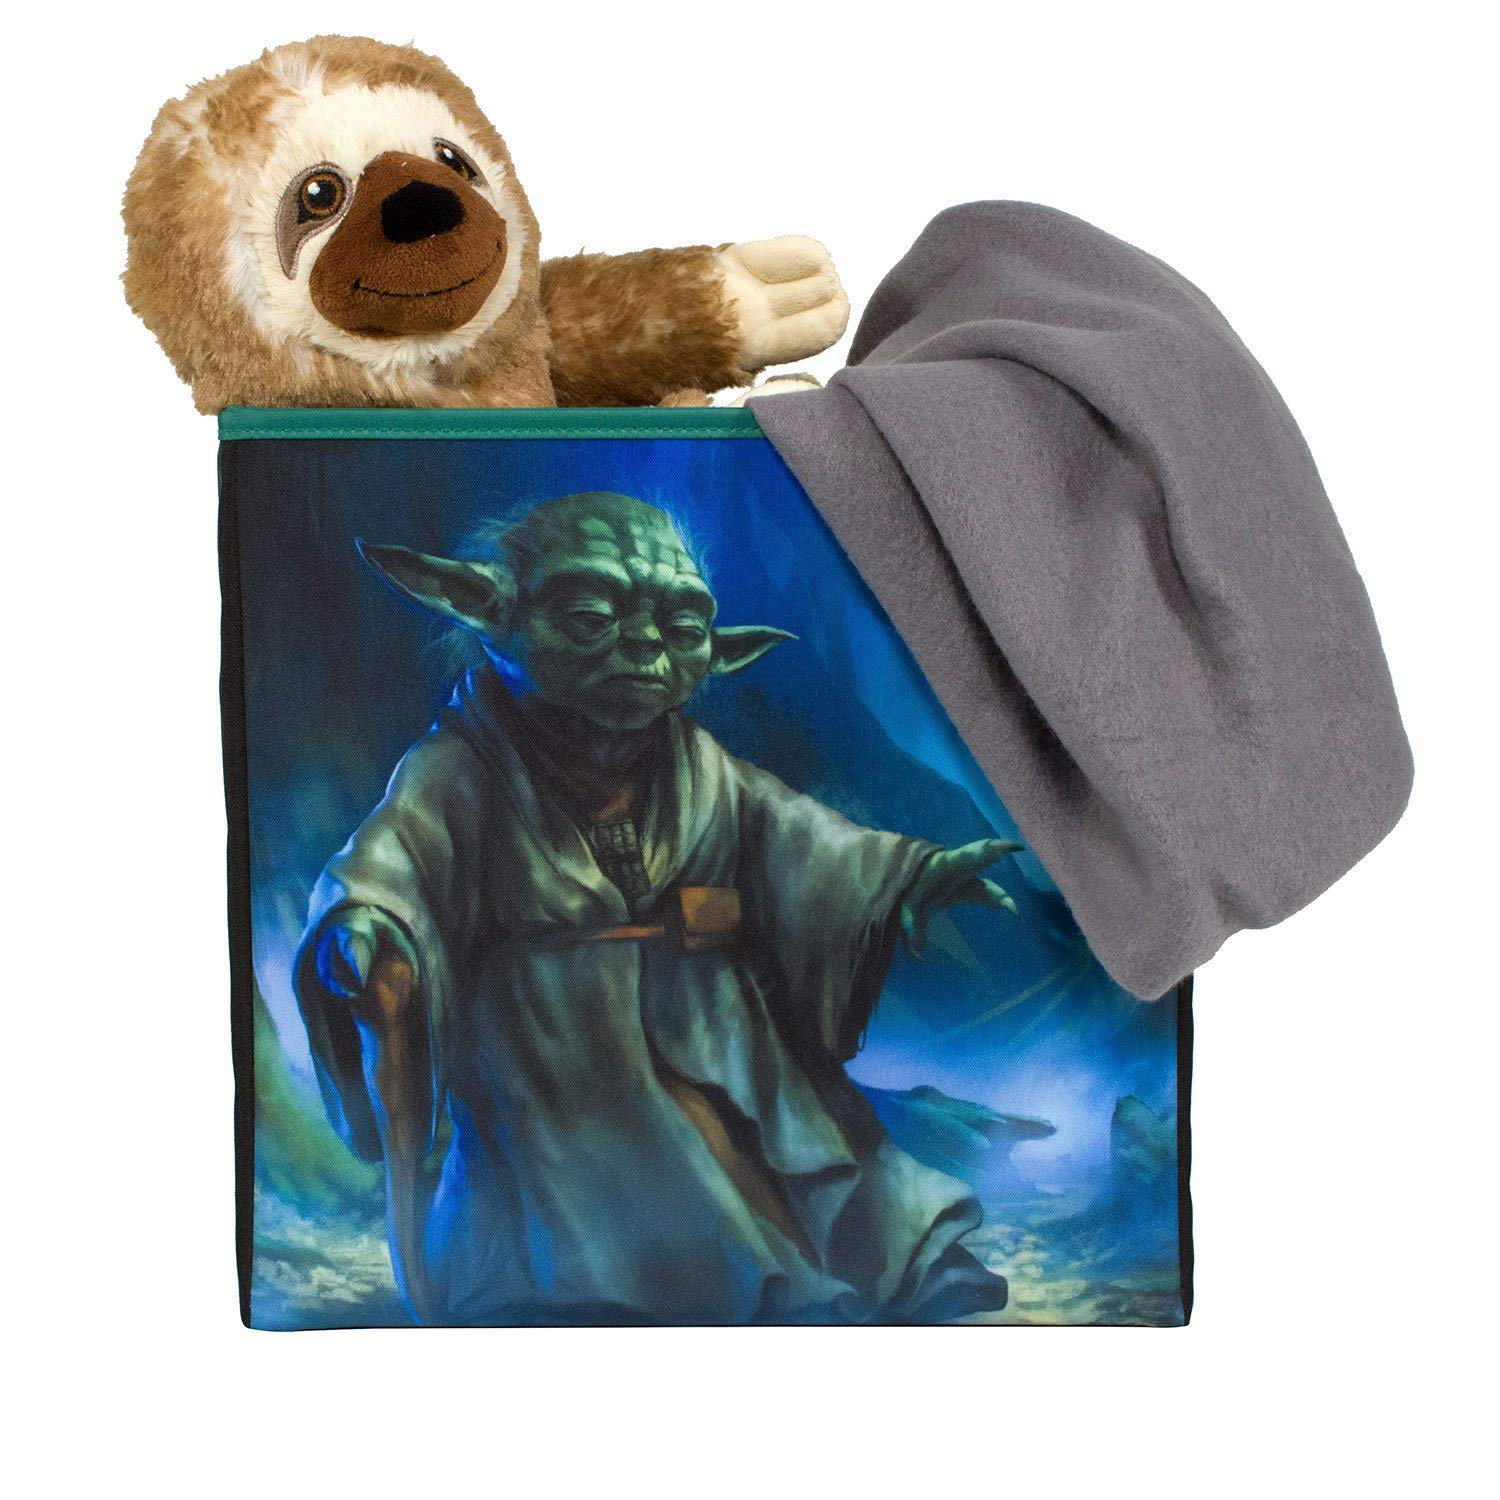 Everything Mary Star Wars Yoda Collapsible Storage Bin by Disney - Cube Organizer for Closet, Kids Bedroom Box, Playroom Chest - Foldable Home Decor Basket Container with Strong Handles and Design